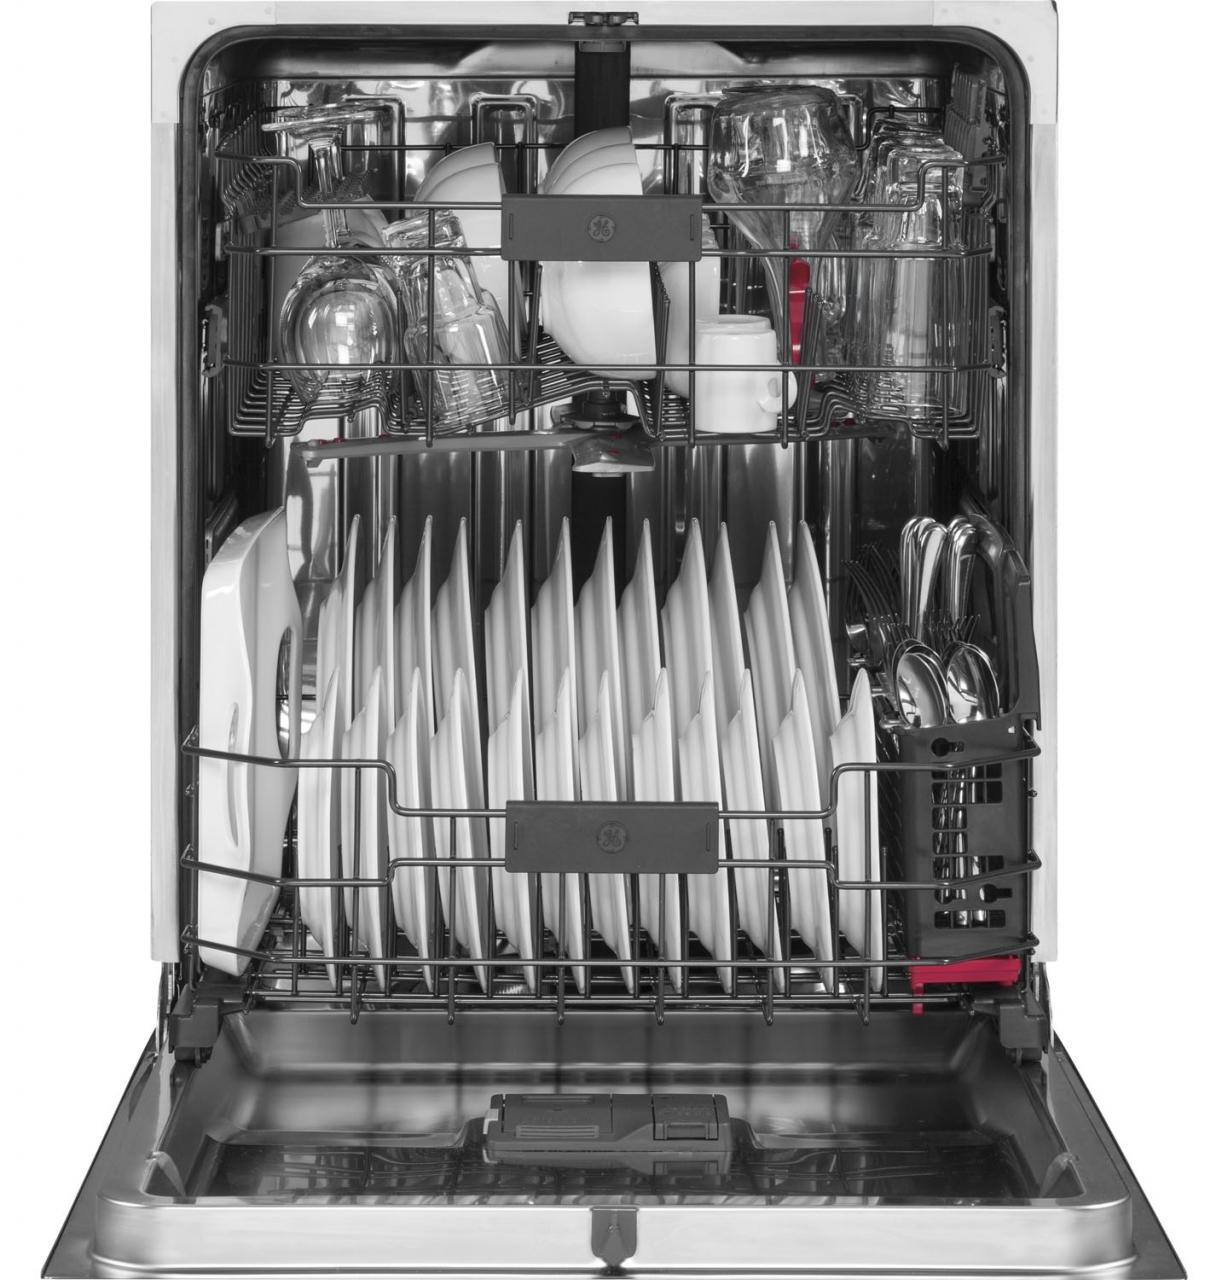 PDT845SMJSL ge profile dishwasher